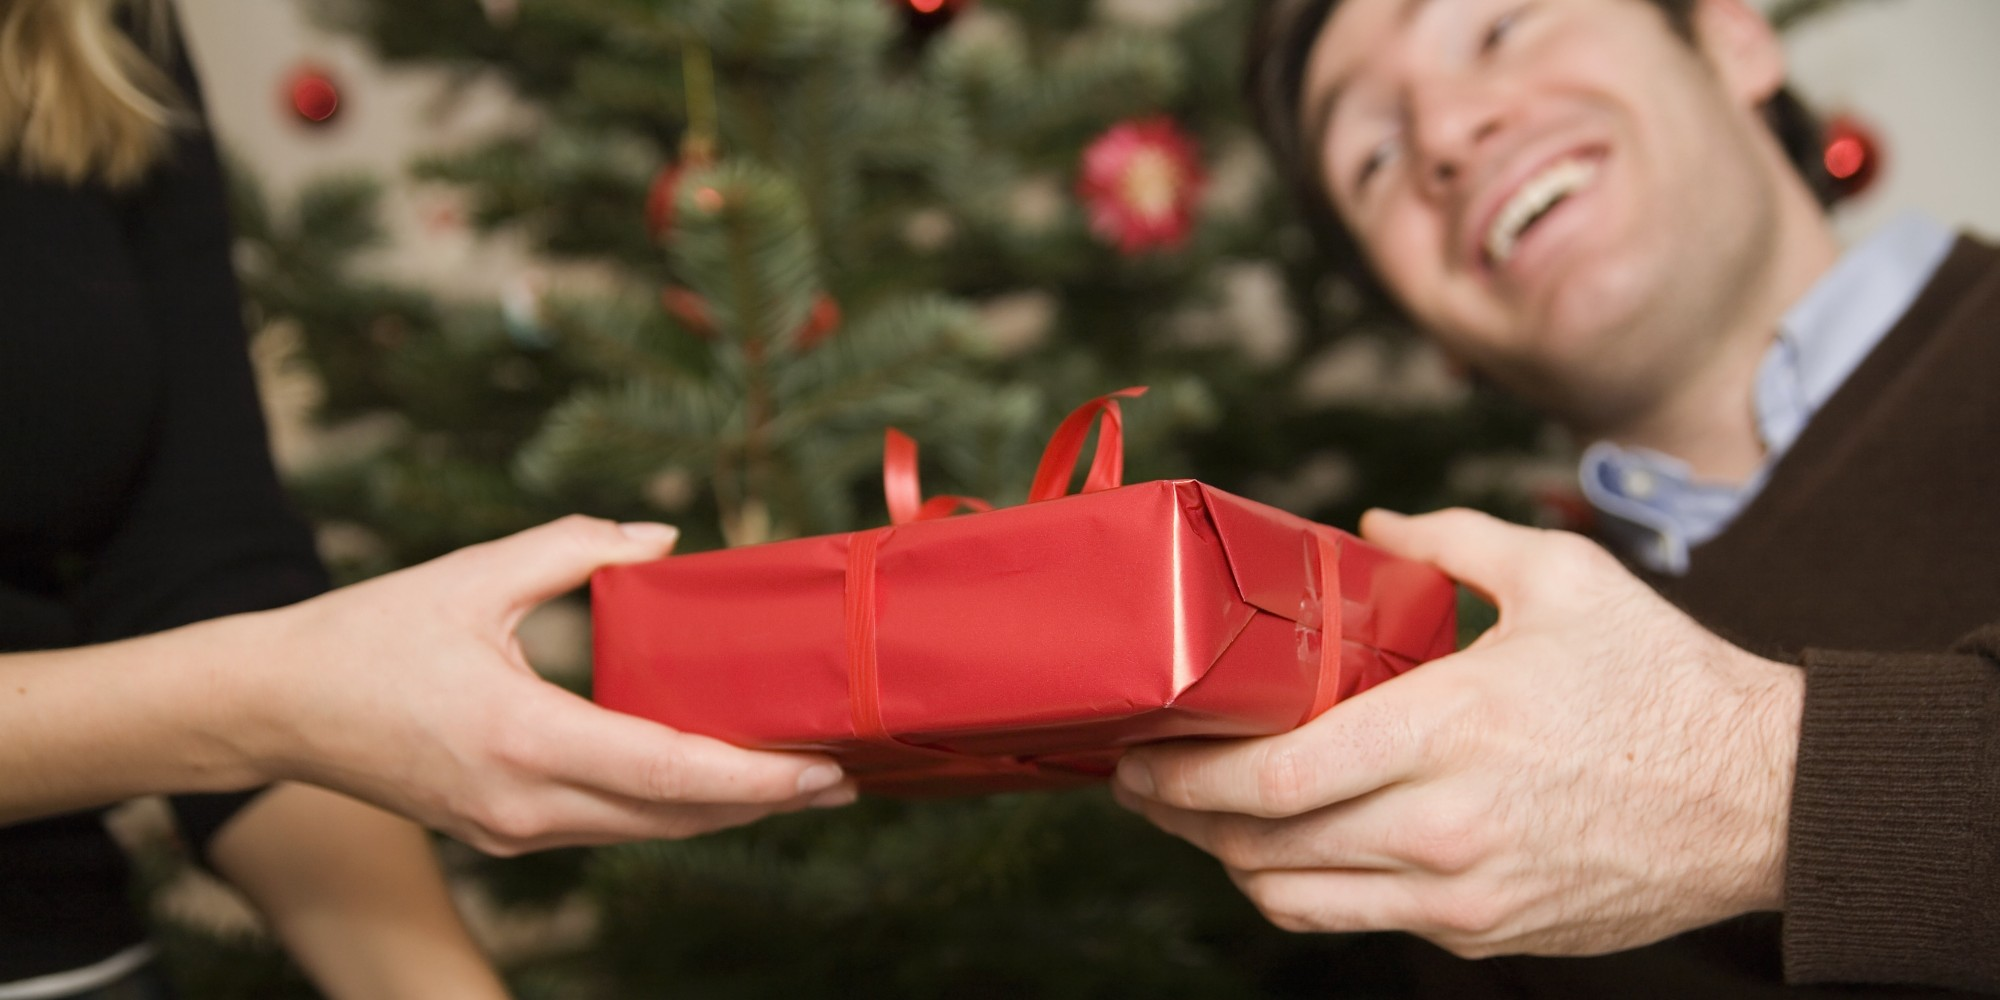 Gifts For Him: Best Men's Christmas Gift Ideas 2013 (PICTURES)